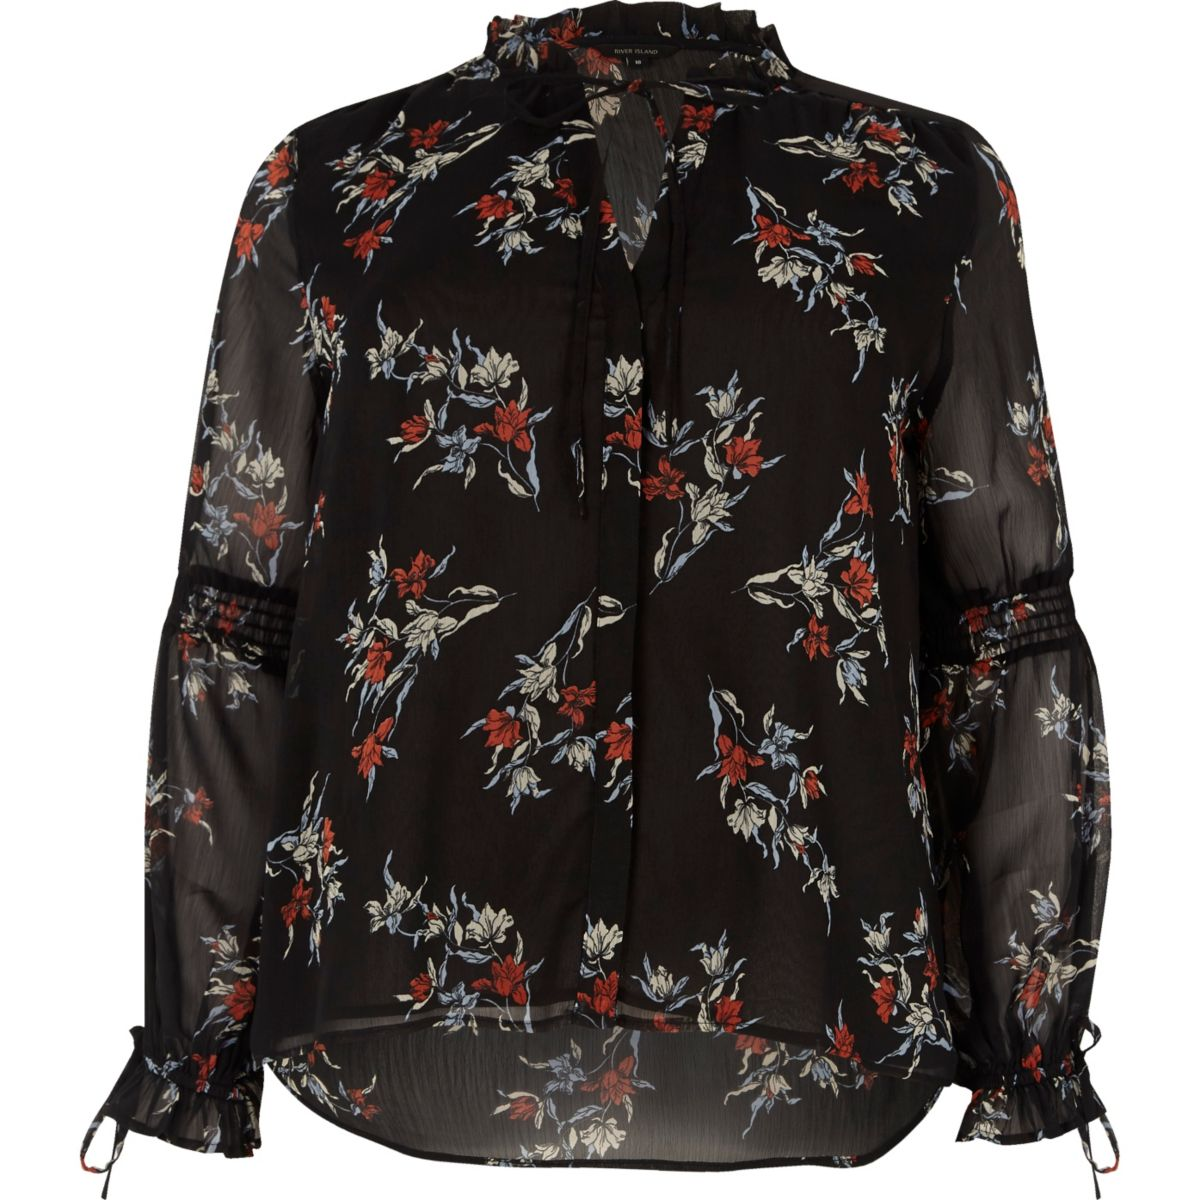 Black floral print frill long sleeve blouse